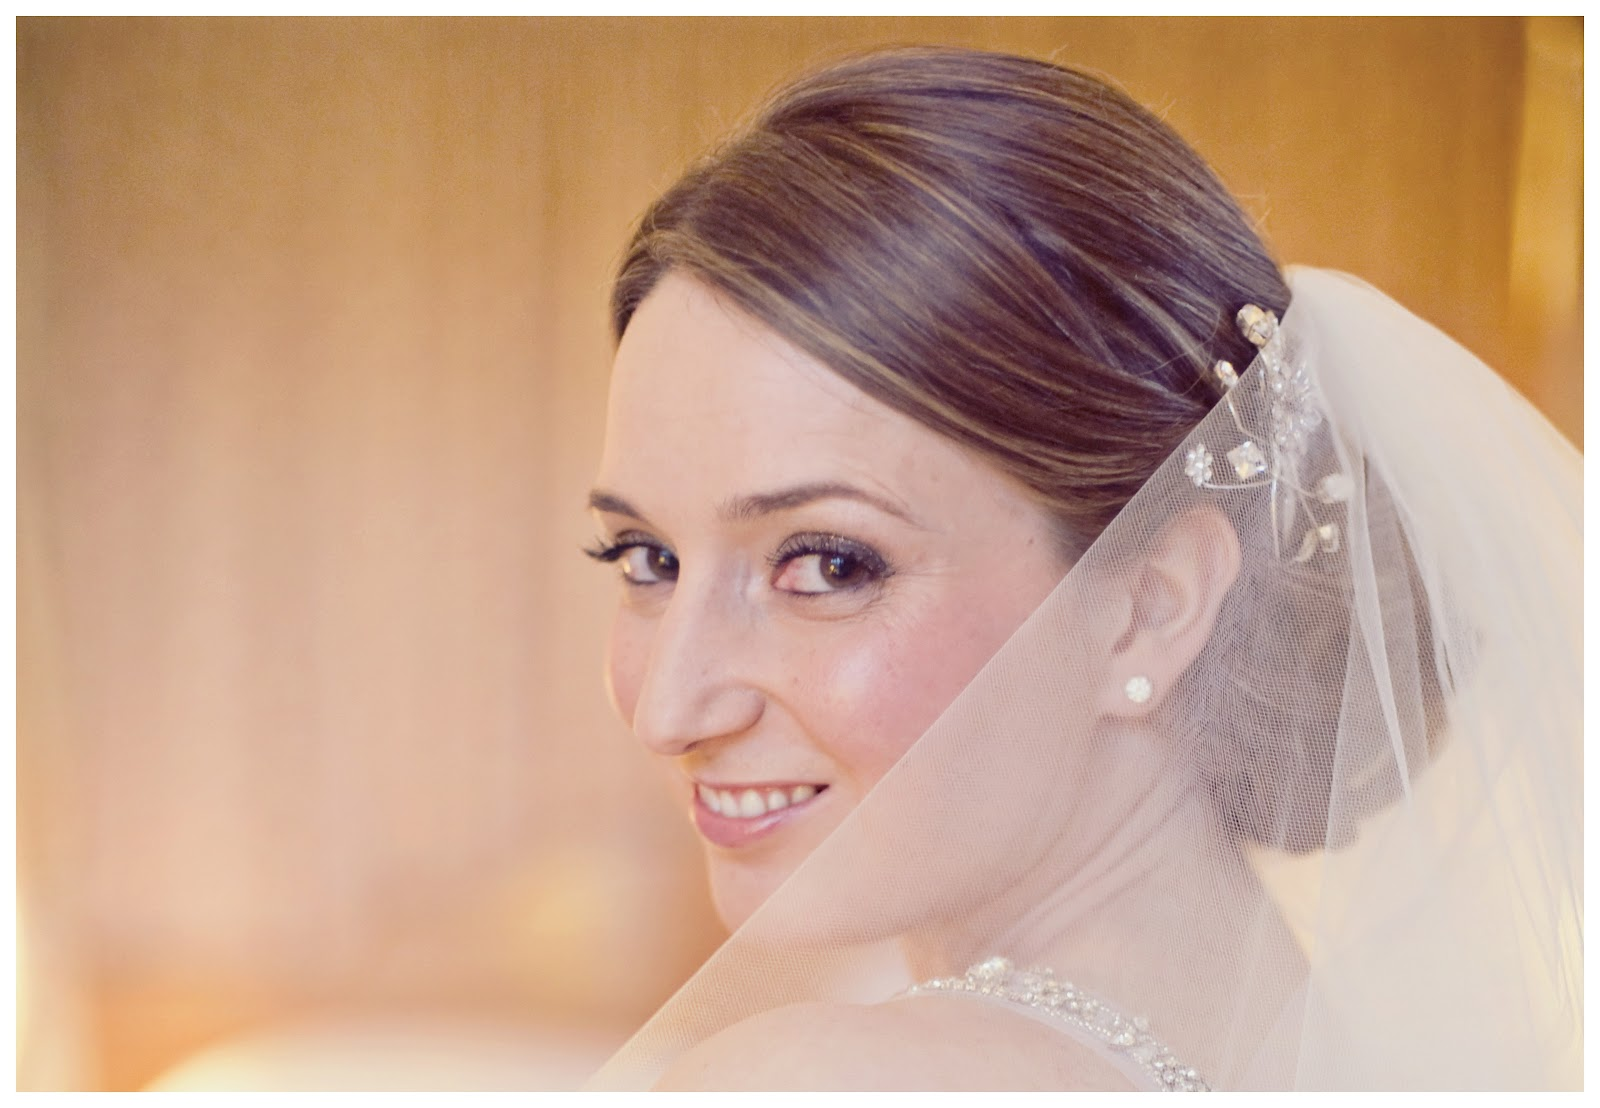 Wedding Beauty Preparation: Do's And Don'ts